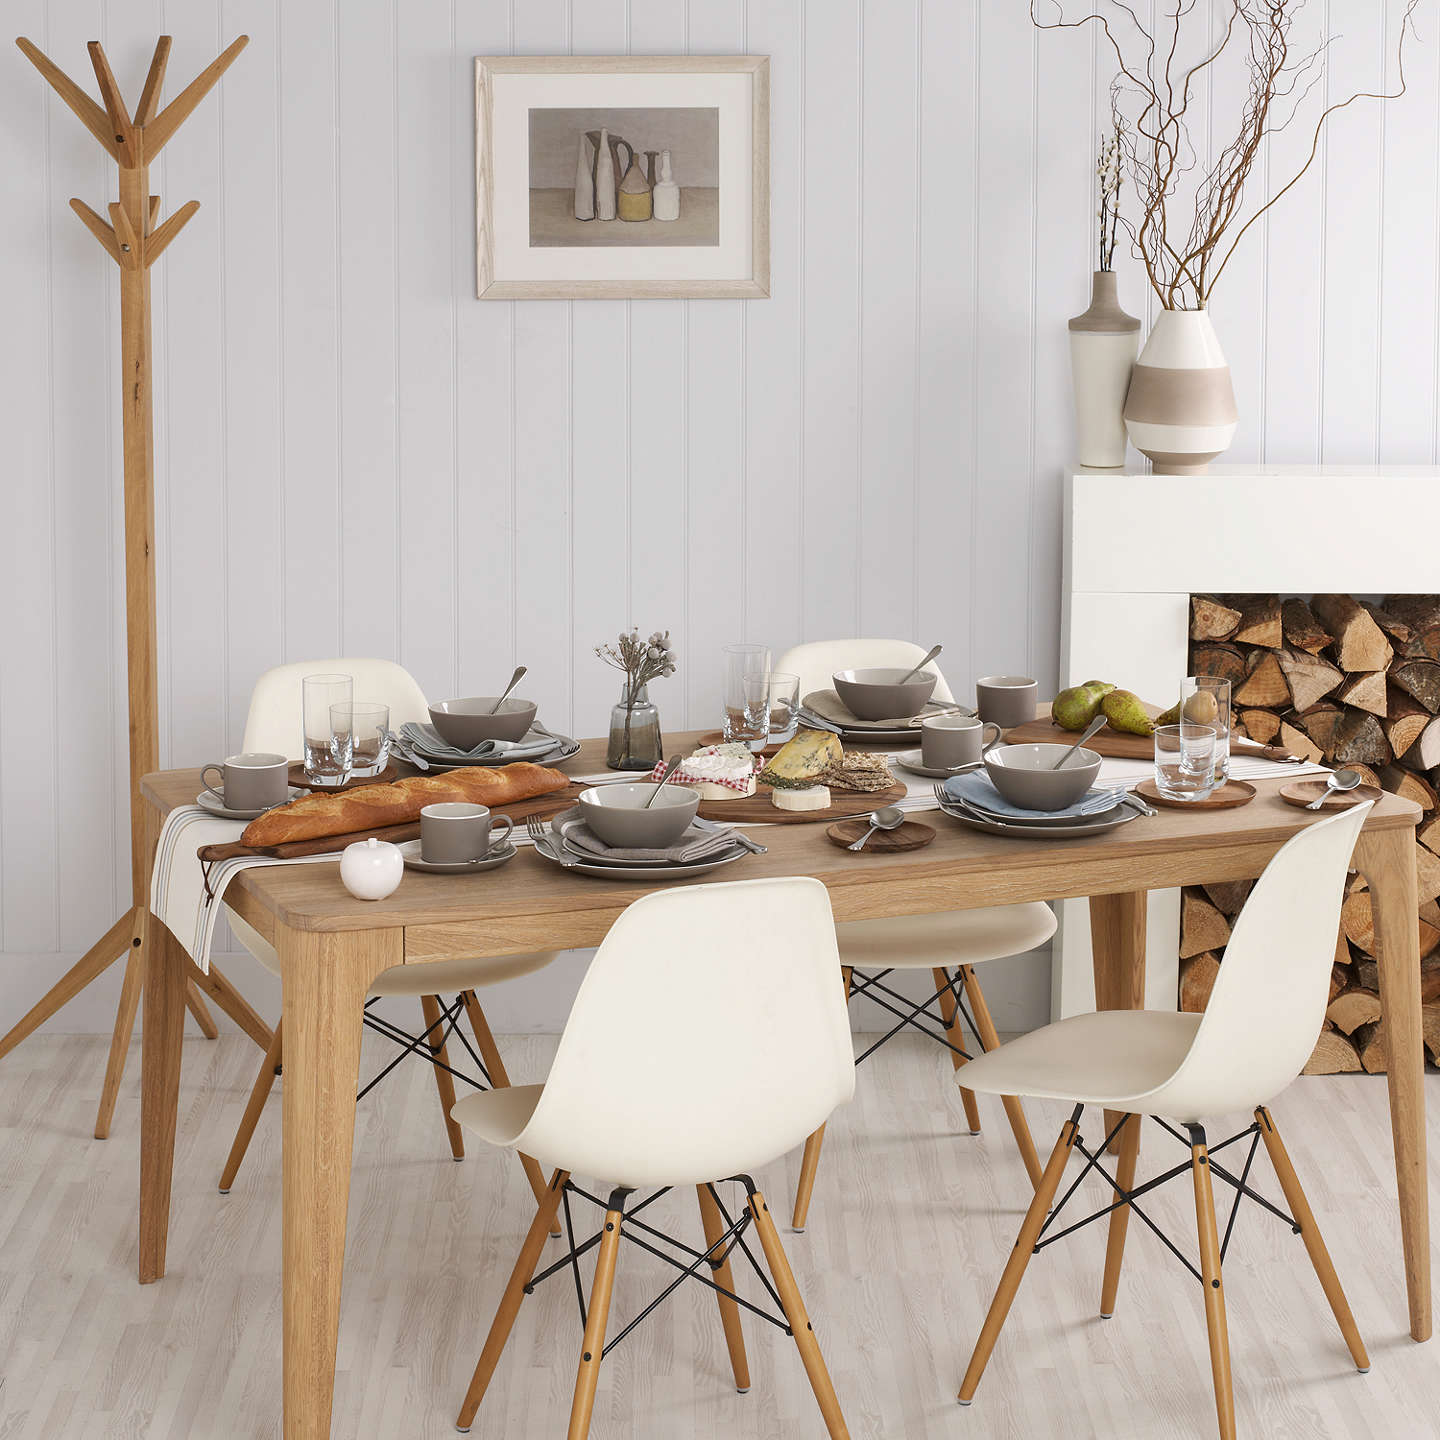 BuyEbbe Gehl For John Lewis Mira 6 Seater Dining Table Oak Online At Johnlewis